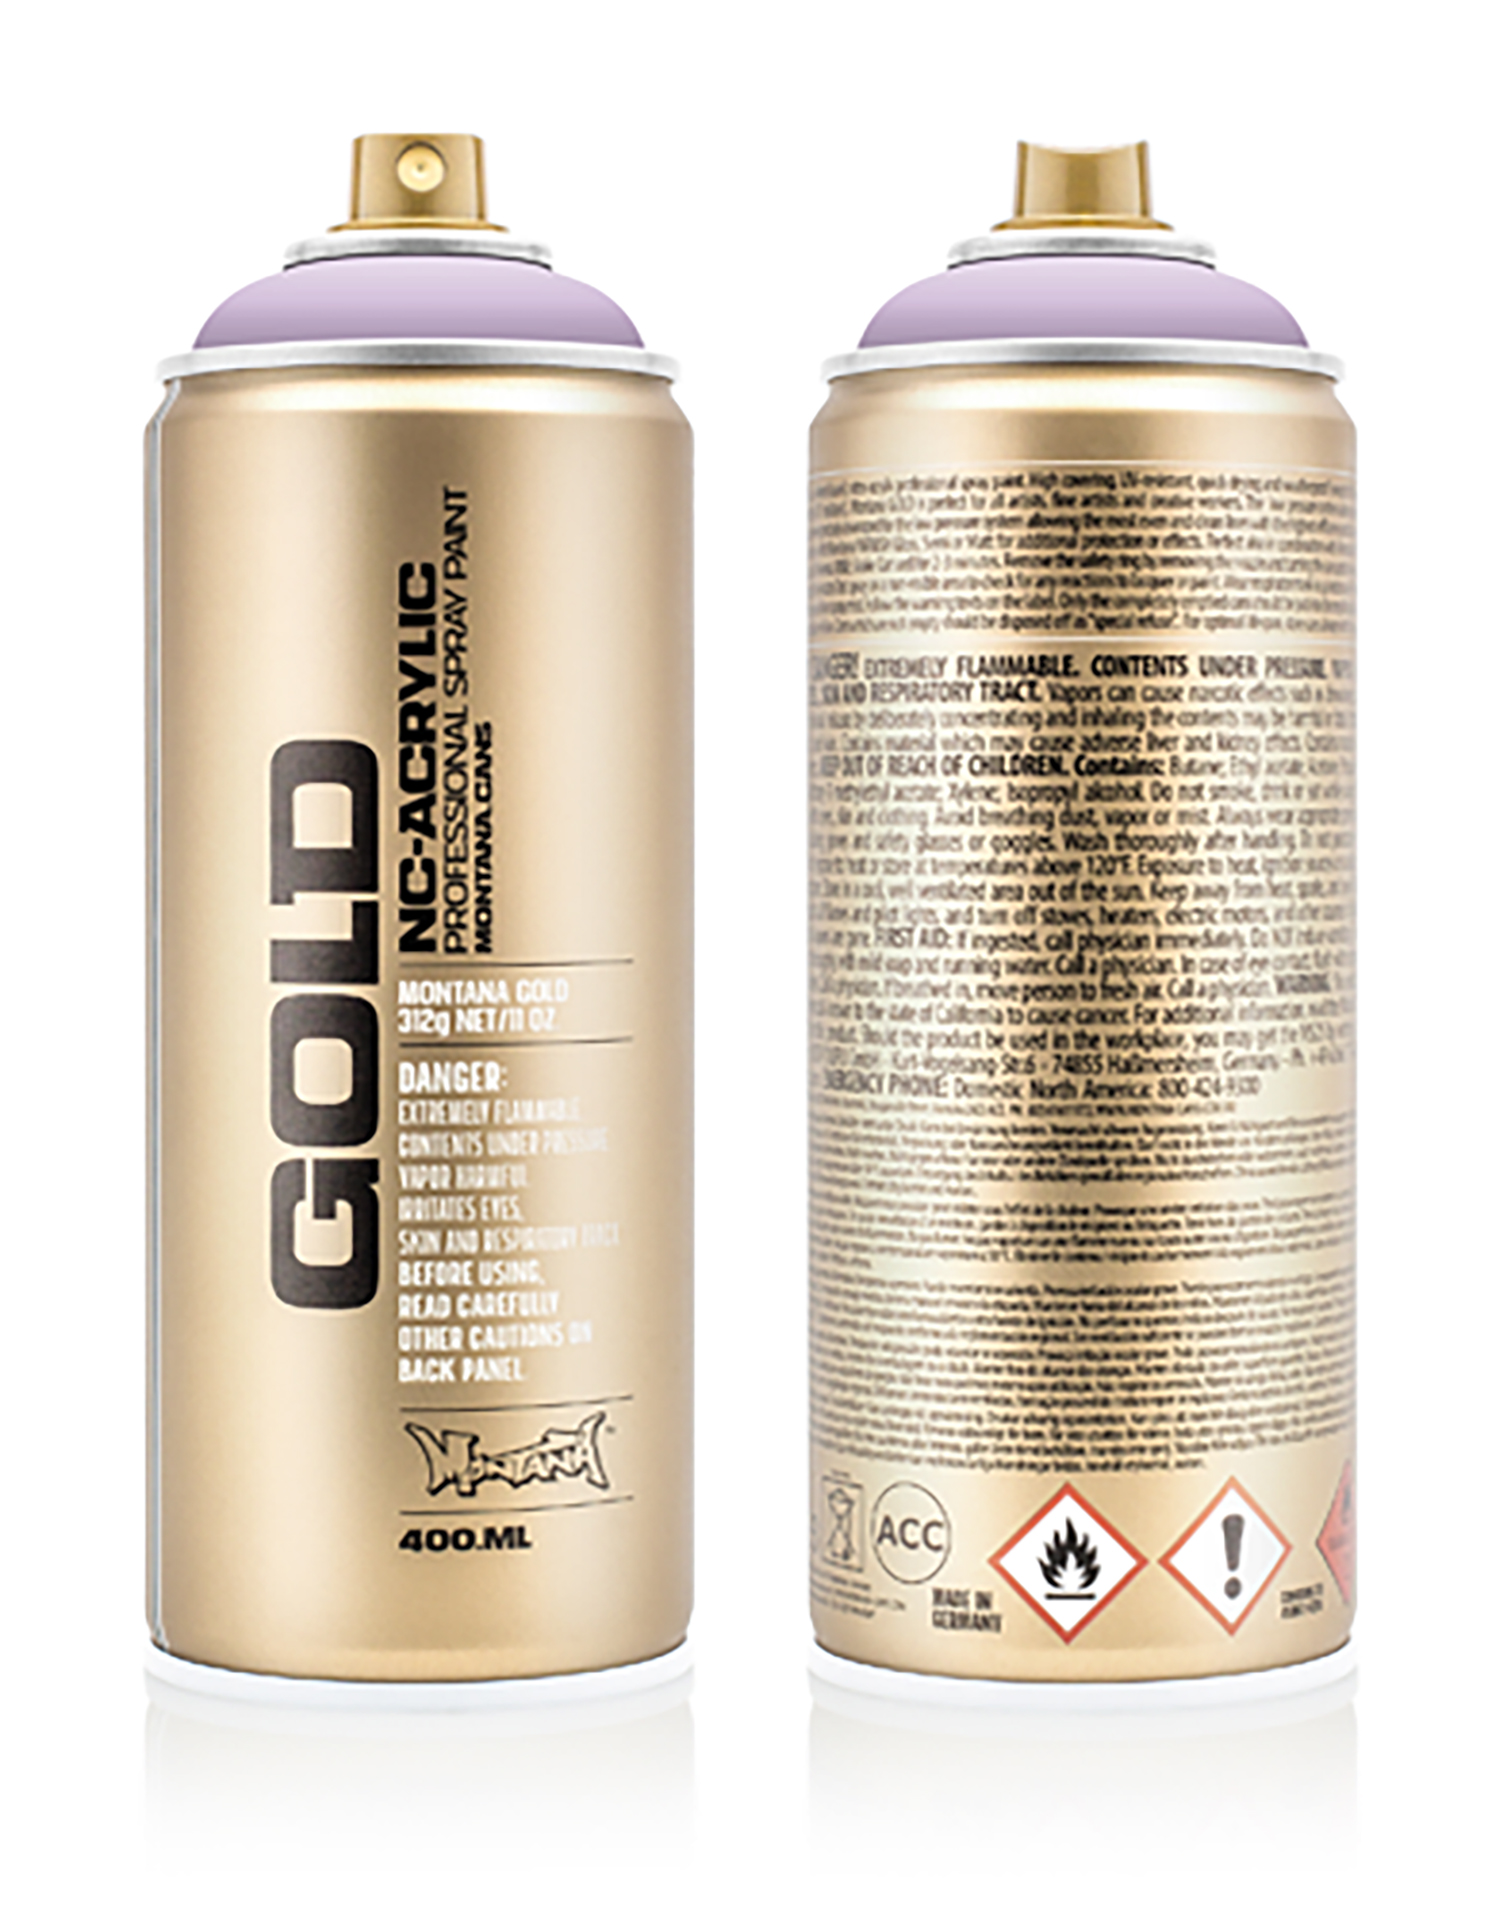 MONTANA-GOLD-SPRAY-400ML-G-4200